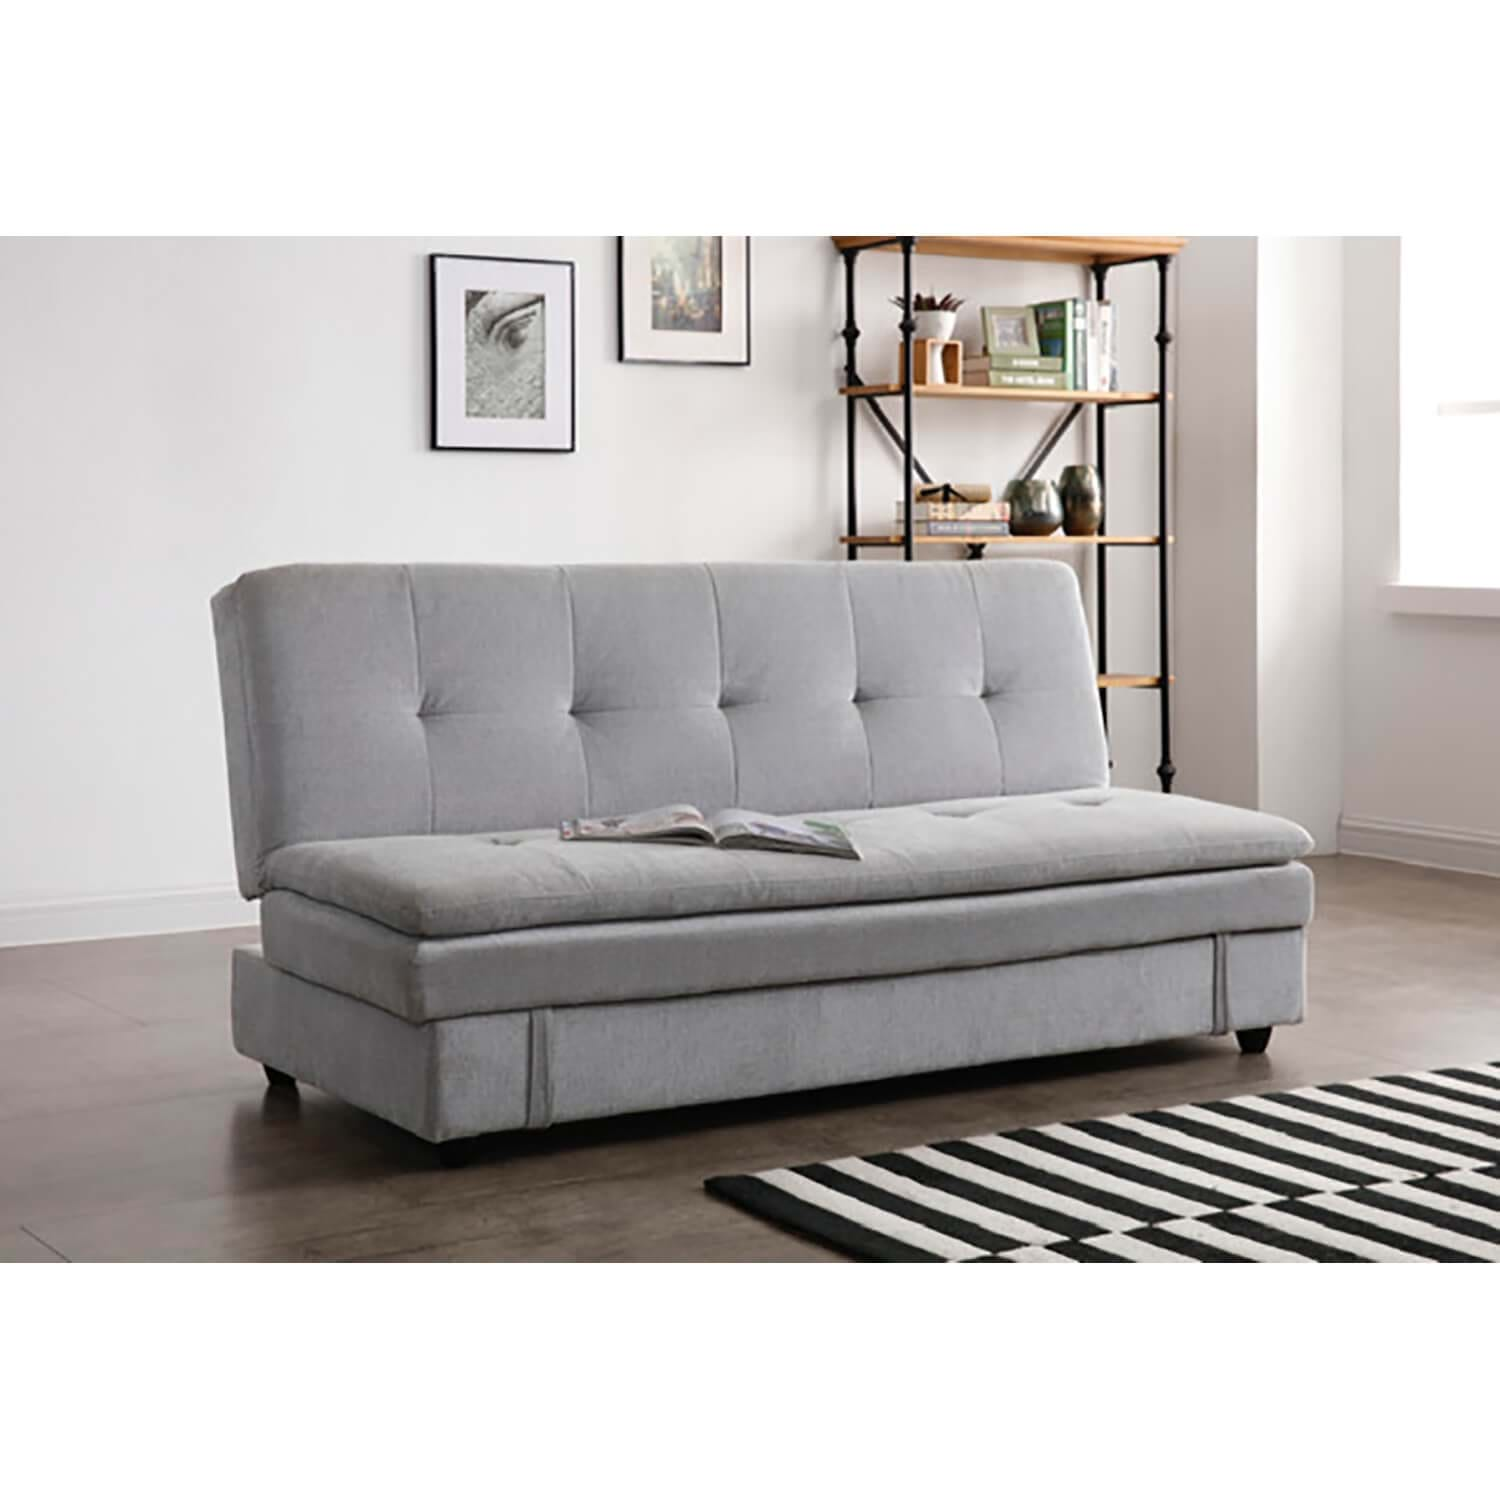 Image of Casa Ollie Fabric Storage Sofabed, Misty